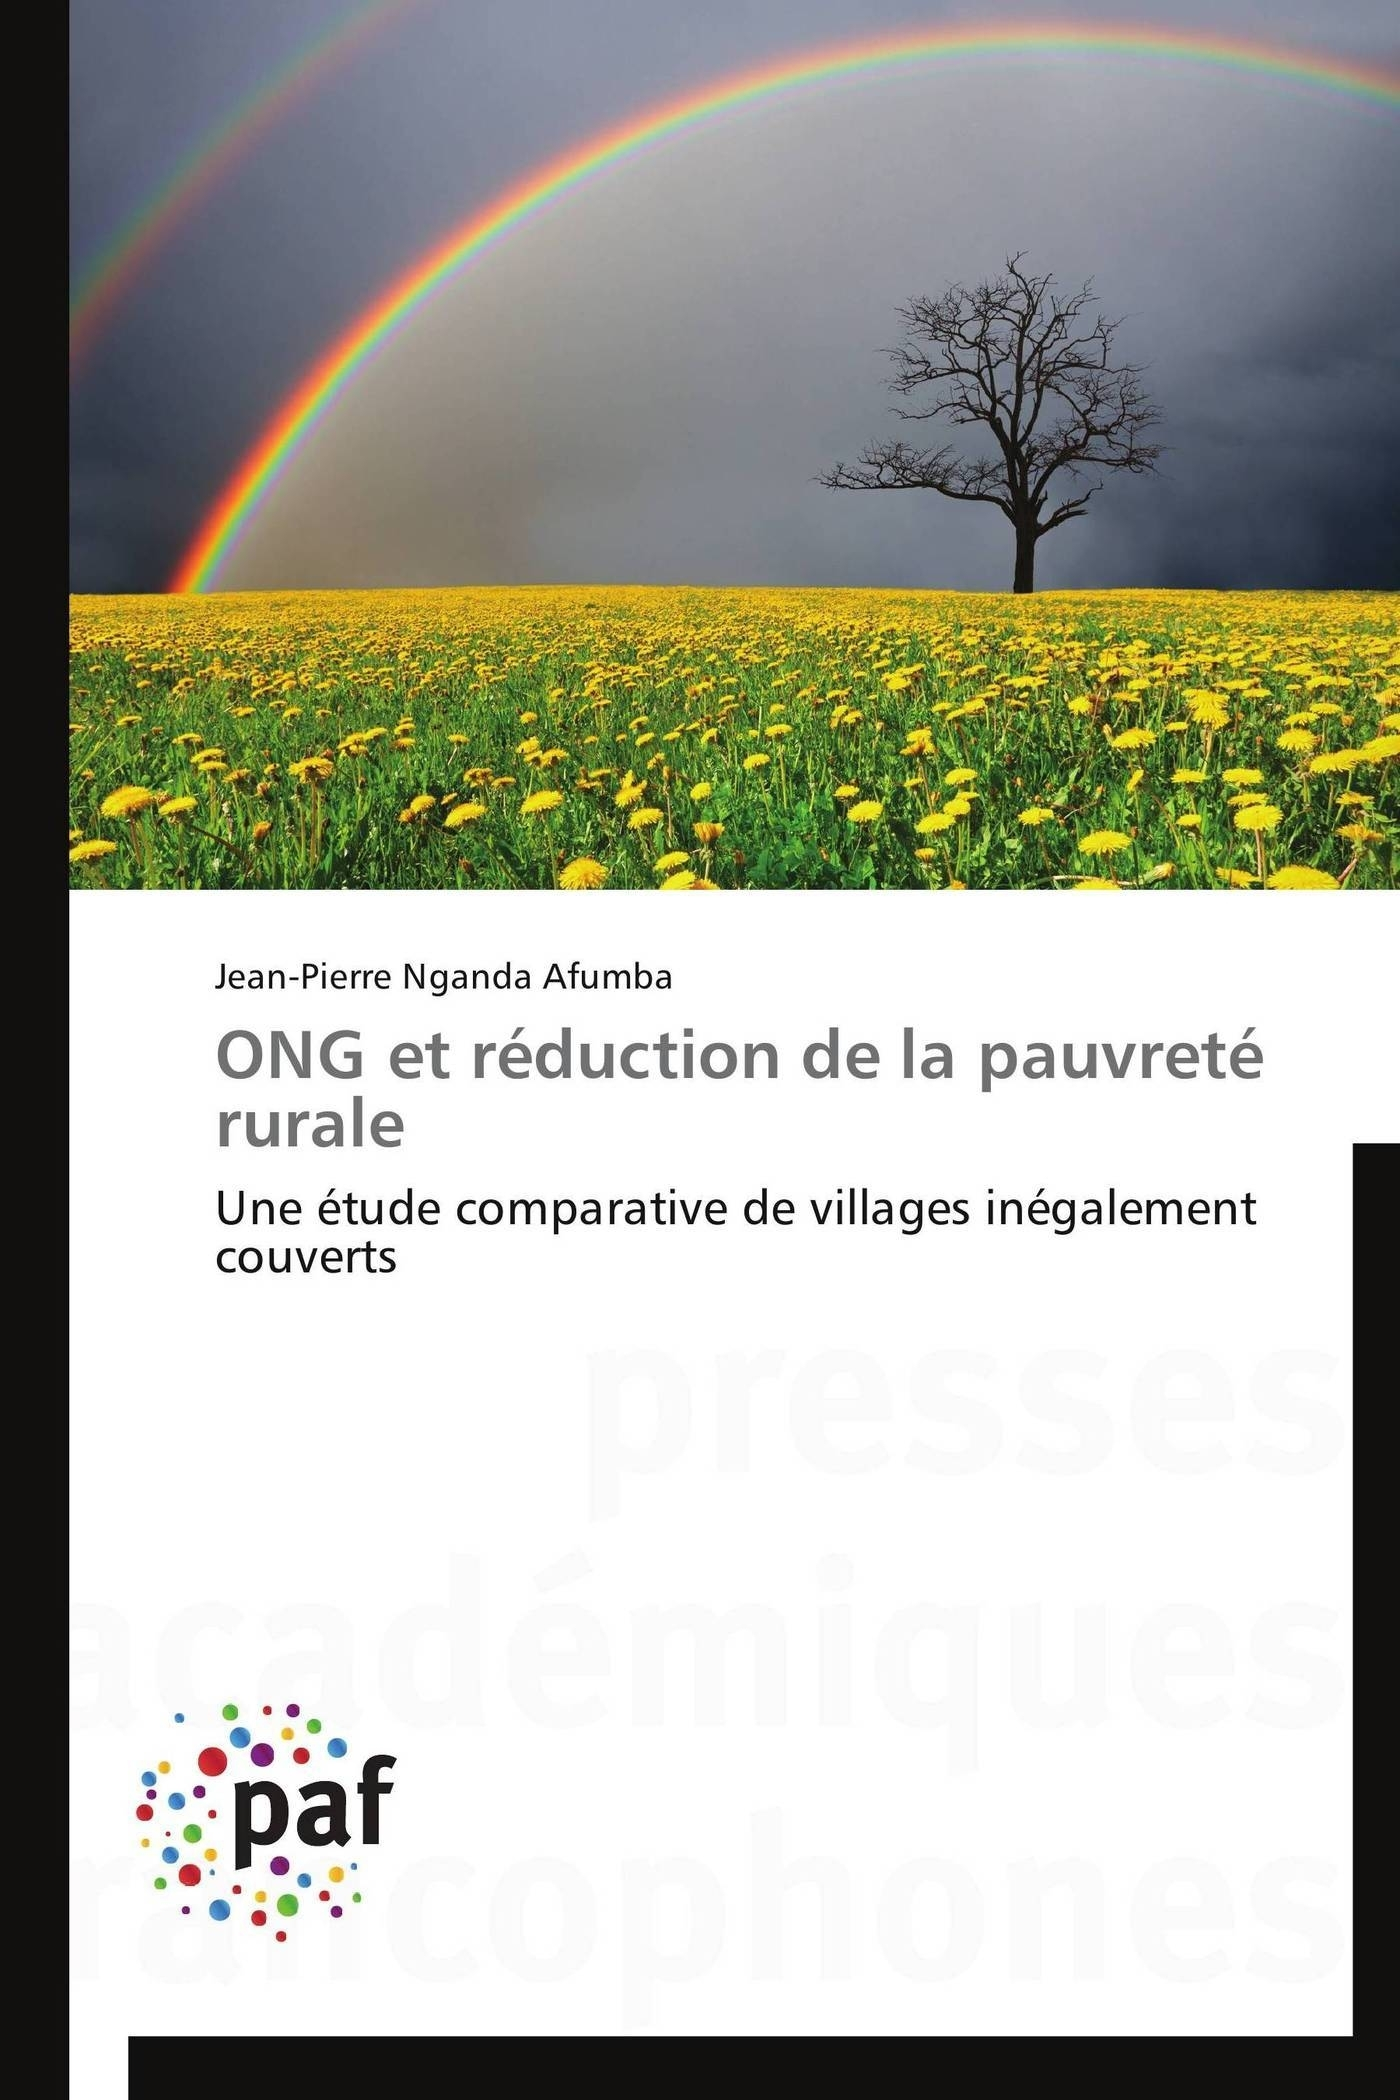 ONG ET REDUCTION DE LA PAUVRETE RURALE